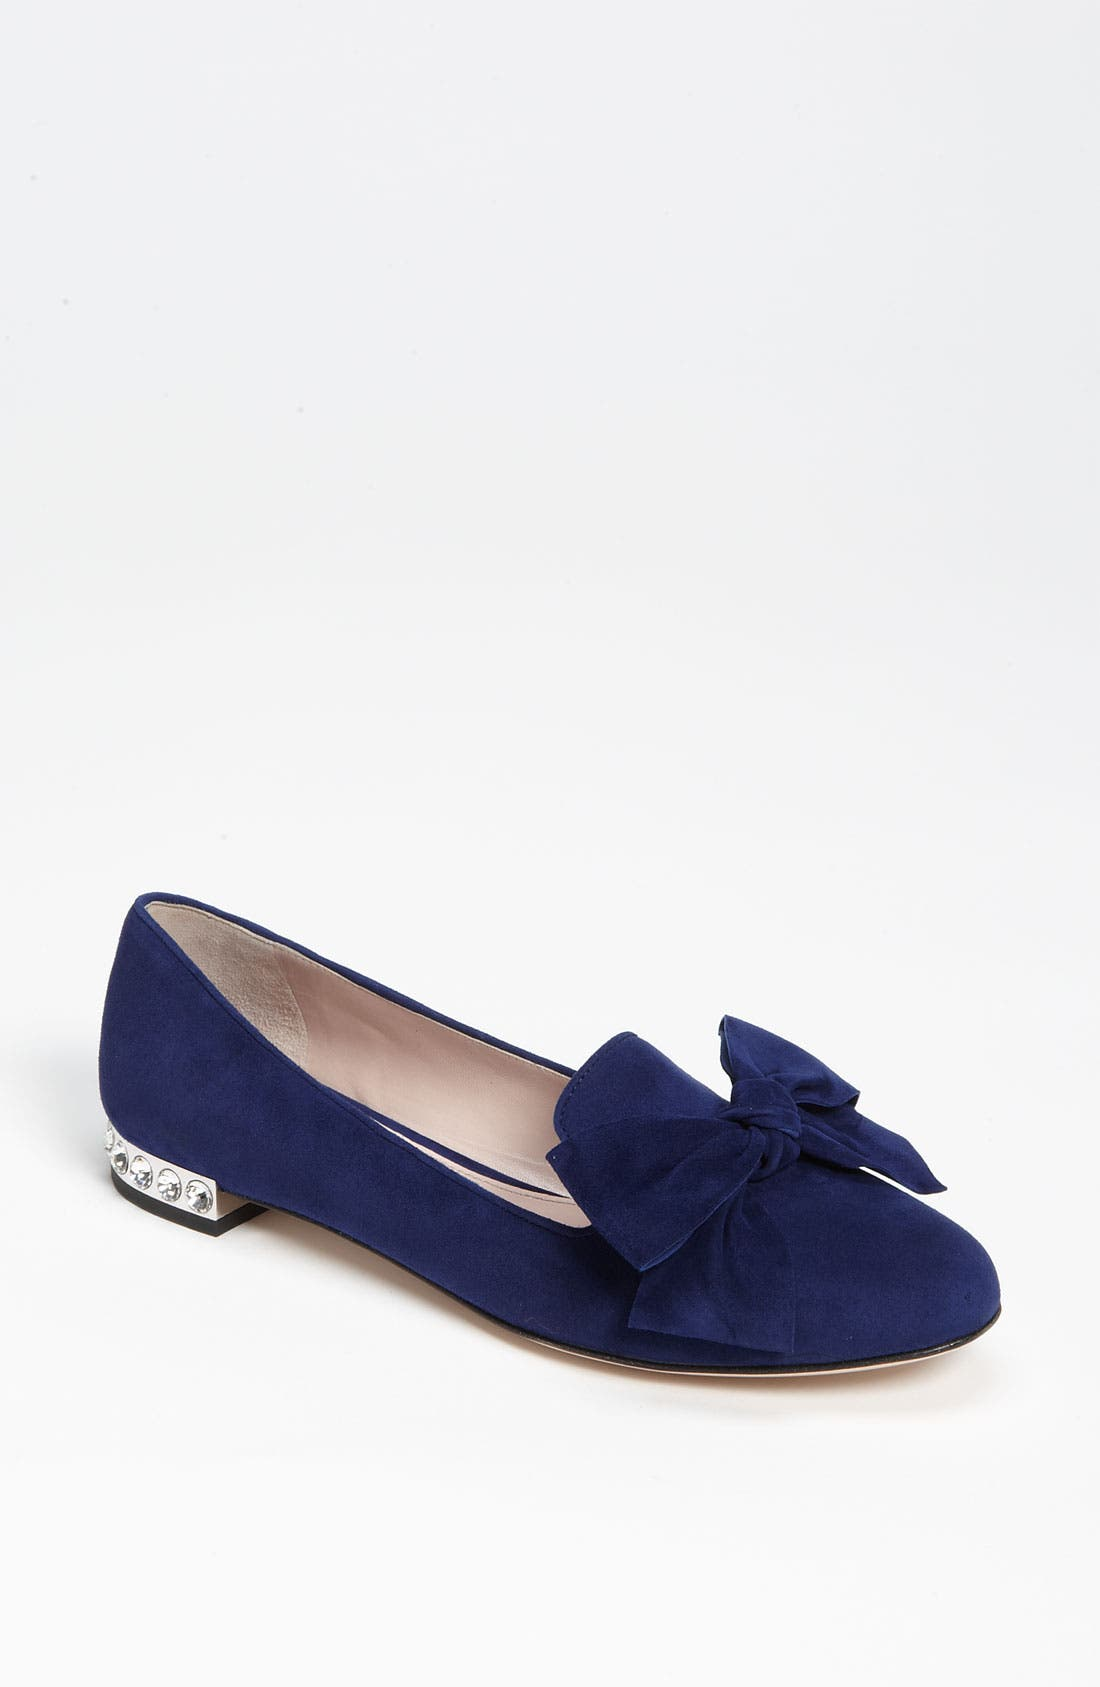 Alternate Image 1 Selected - Miu Miu Moccasin